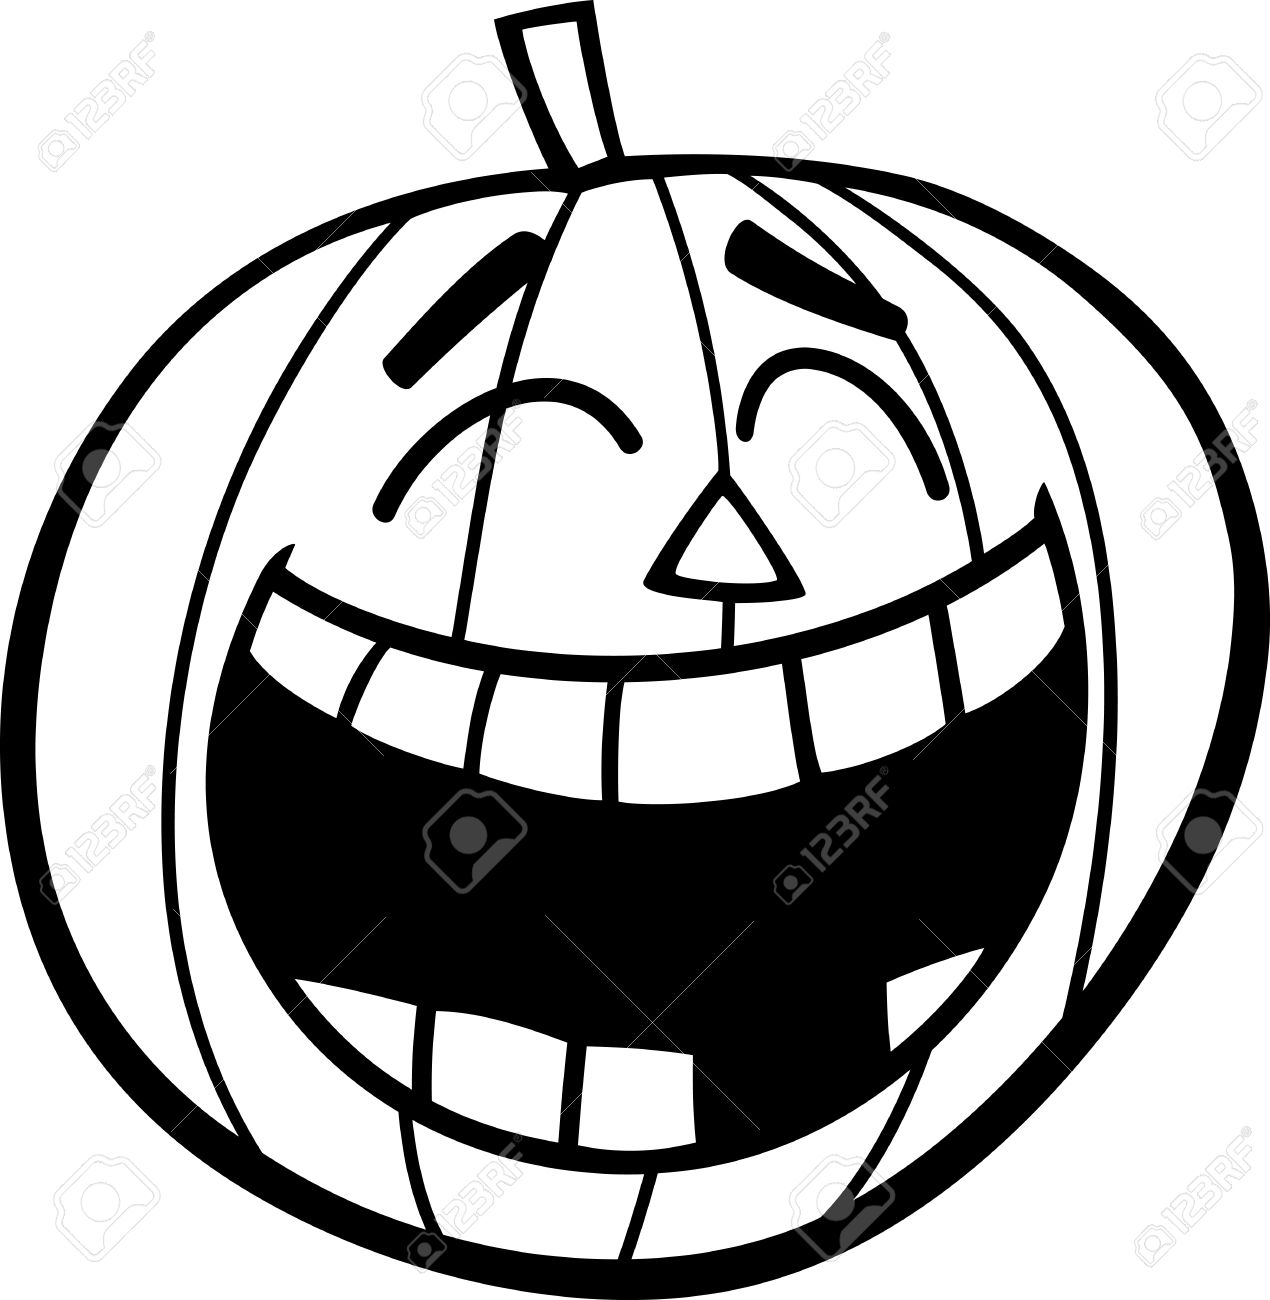 Black And White Cartoon Illustration Of Laughing Halloween Pumpkin.